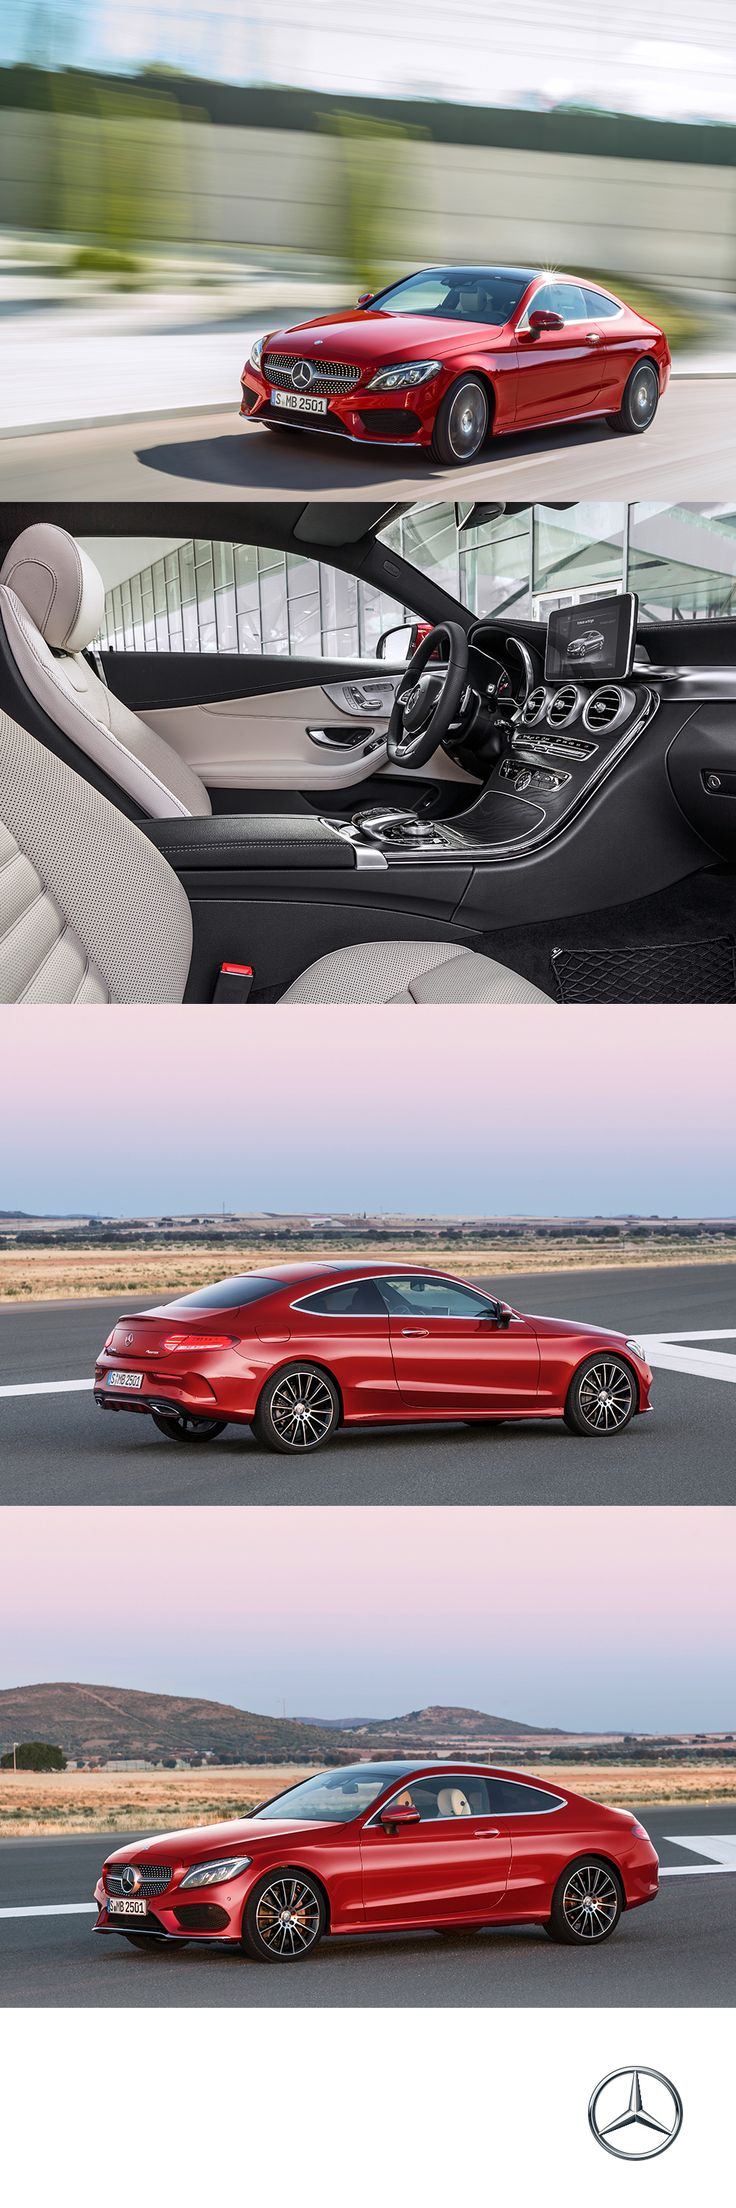 With looks that thrill and the performance to match, the C-Class Coupe is a sight for more eyes.